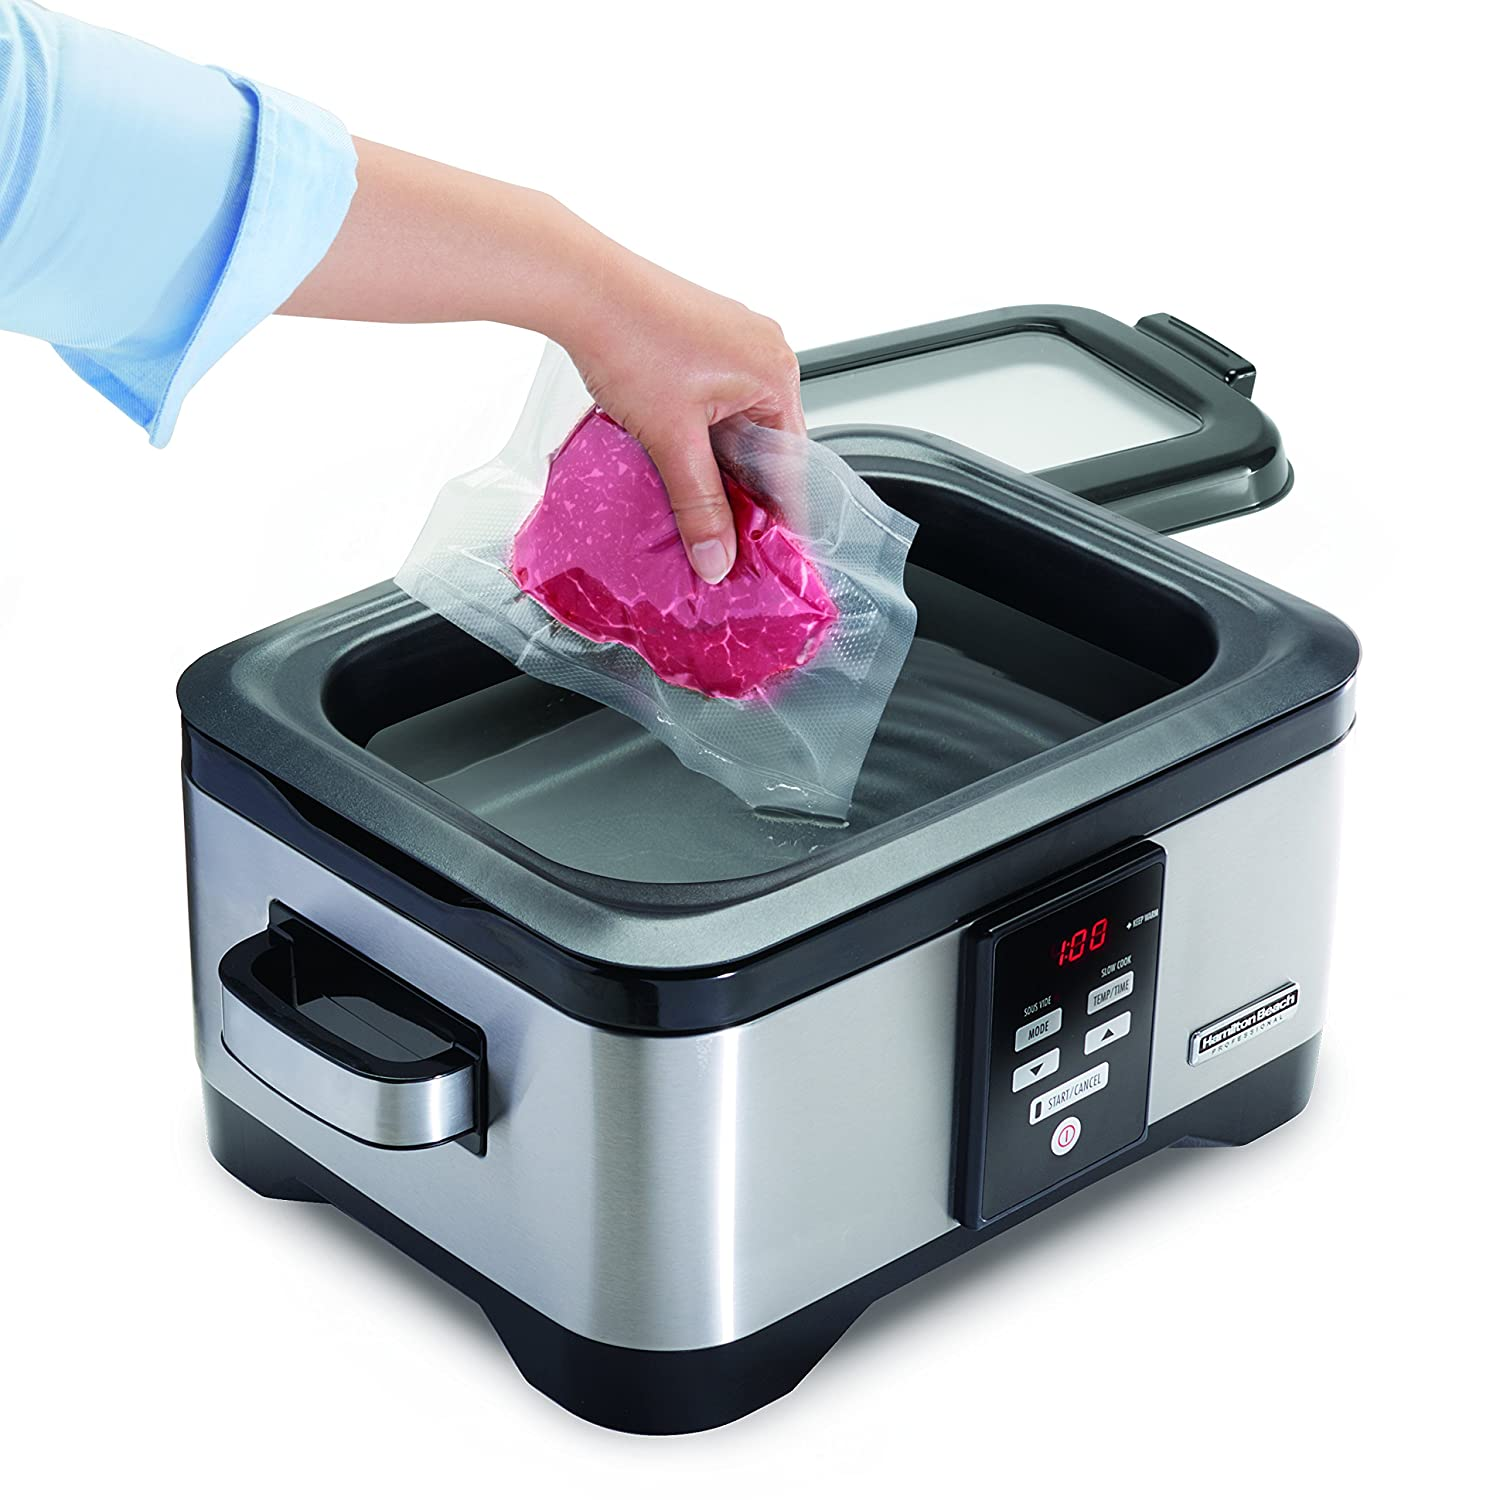 Hamilton Beach Professional Sous Vide Water Oven /& Slow Cooker Stainless Steel 6 Quart Programmable 33970